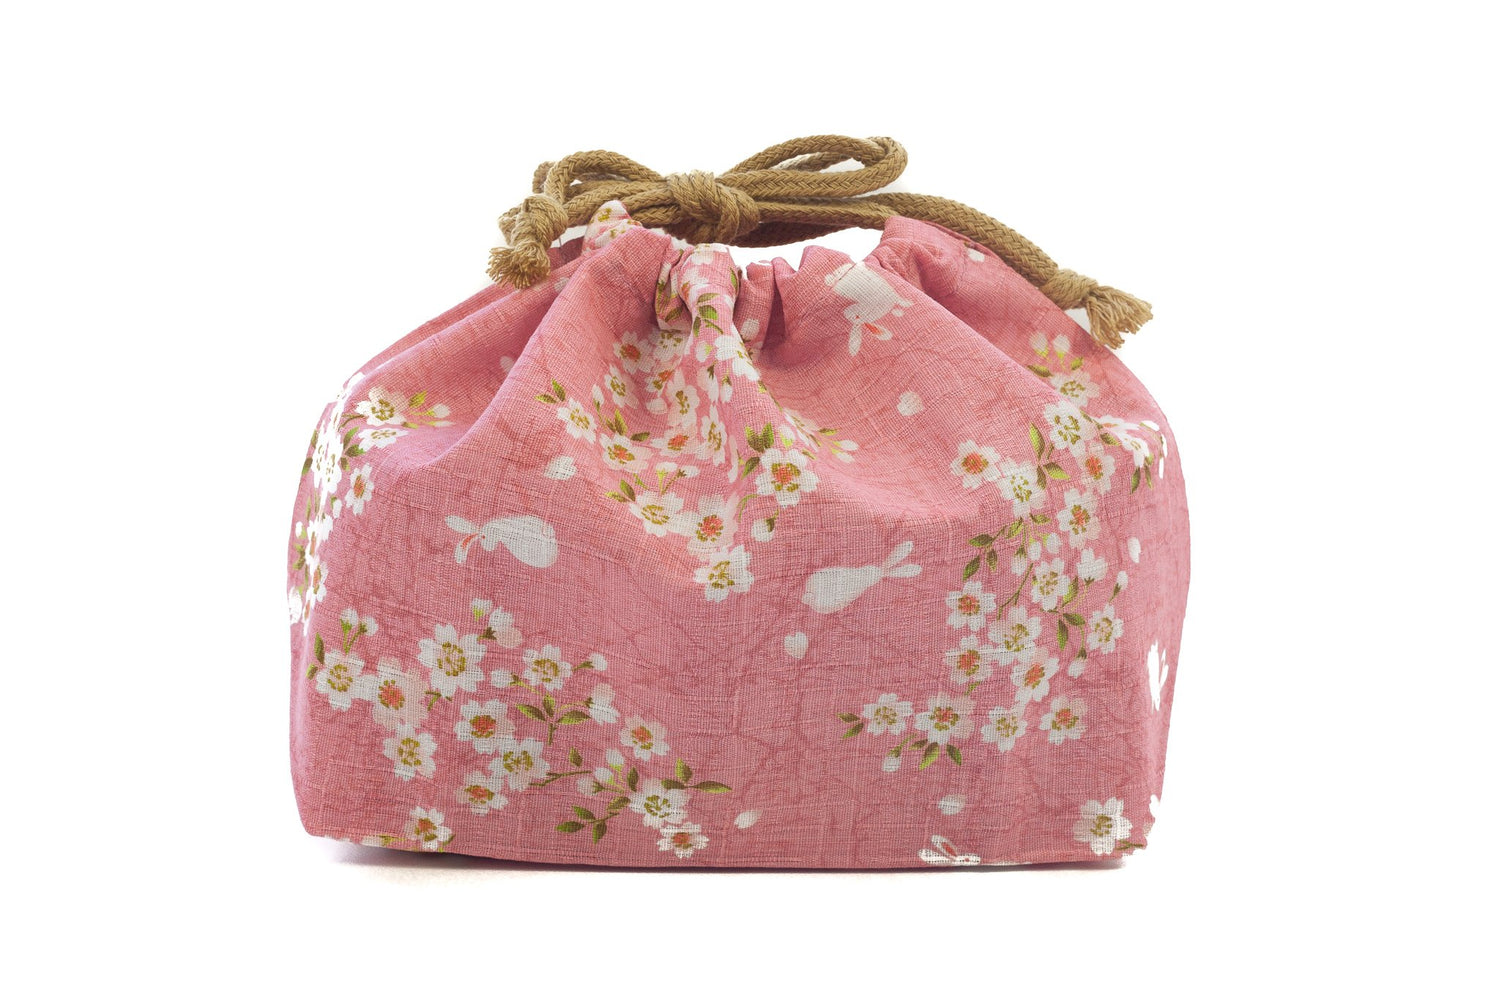 Sakura Usagi Bag | Pink